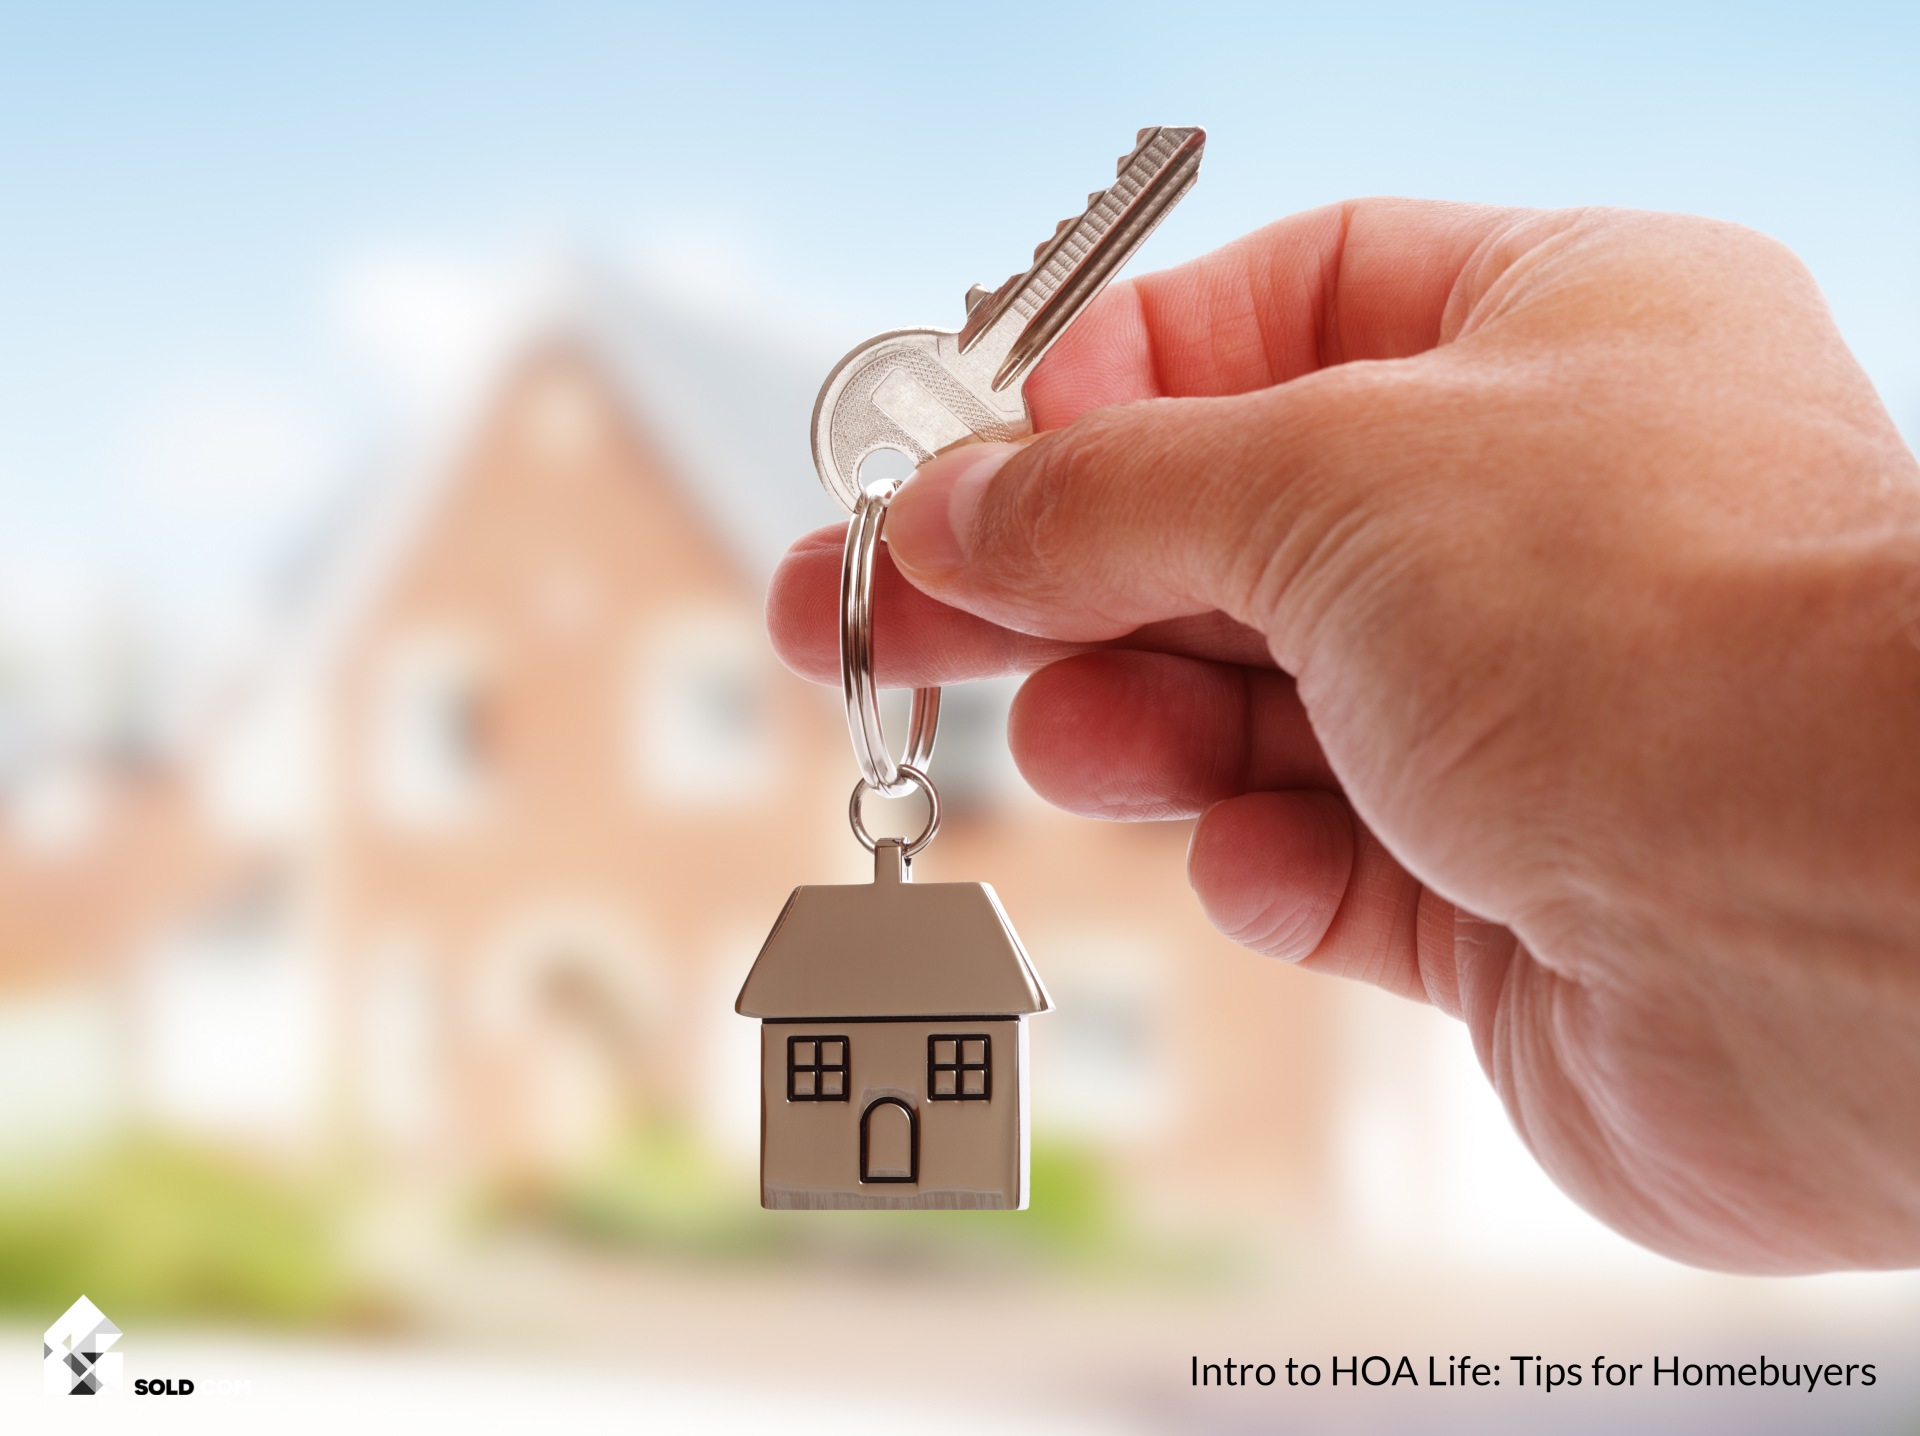 Intro to HOA Life: Tips for Homebuyers